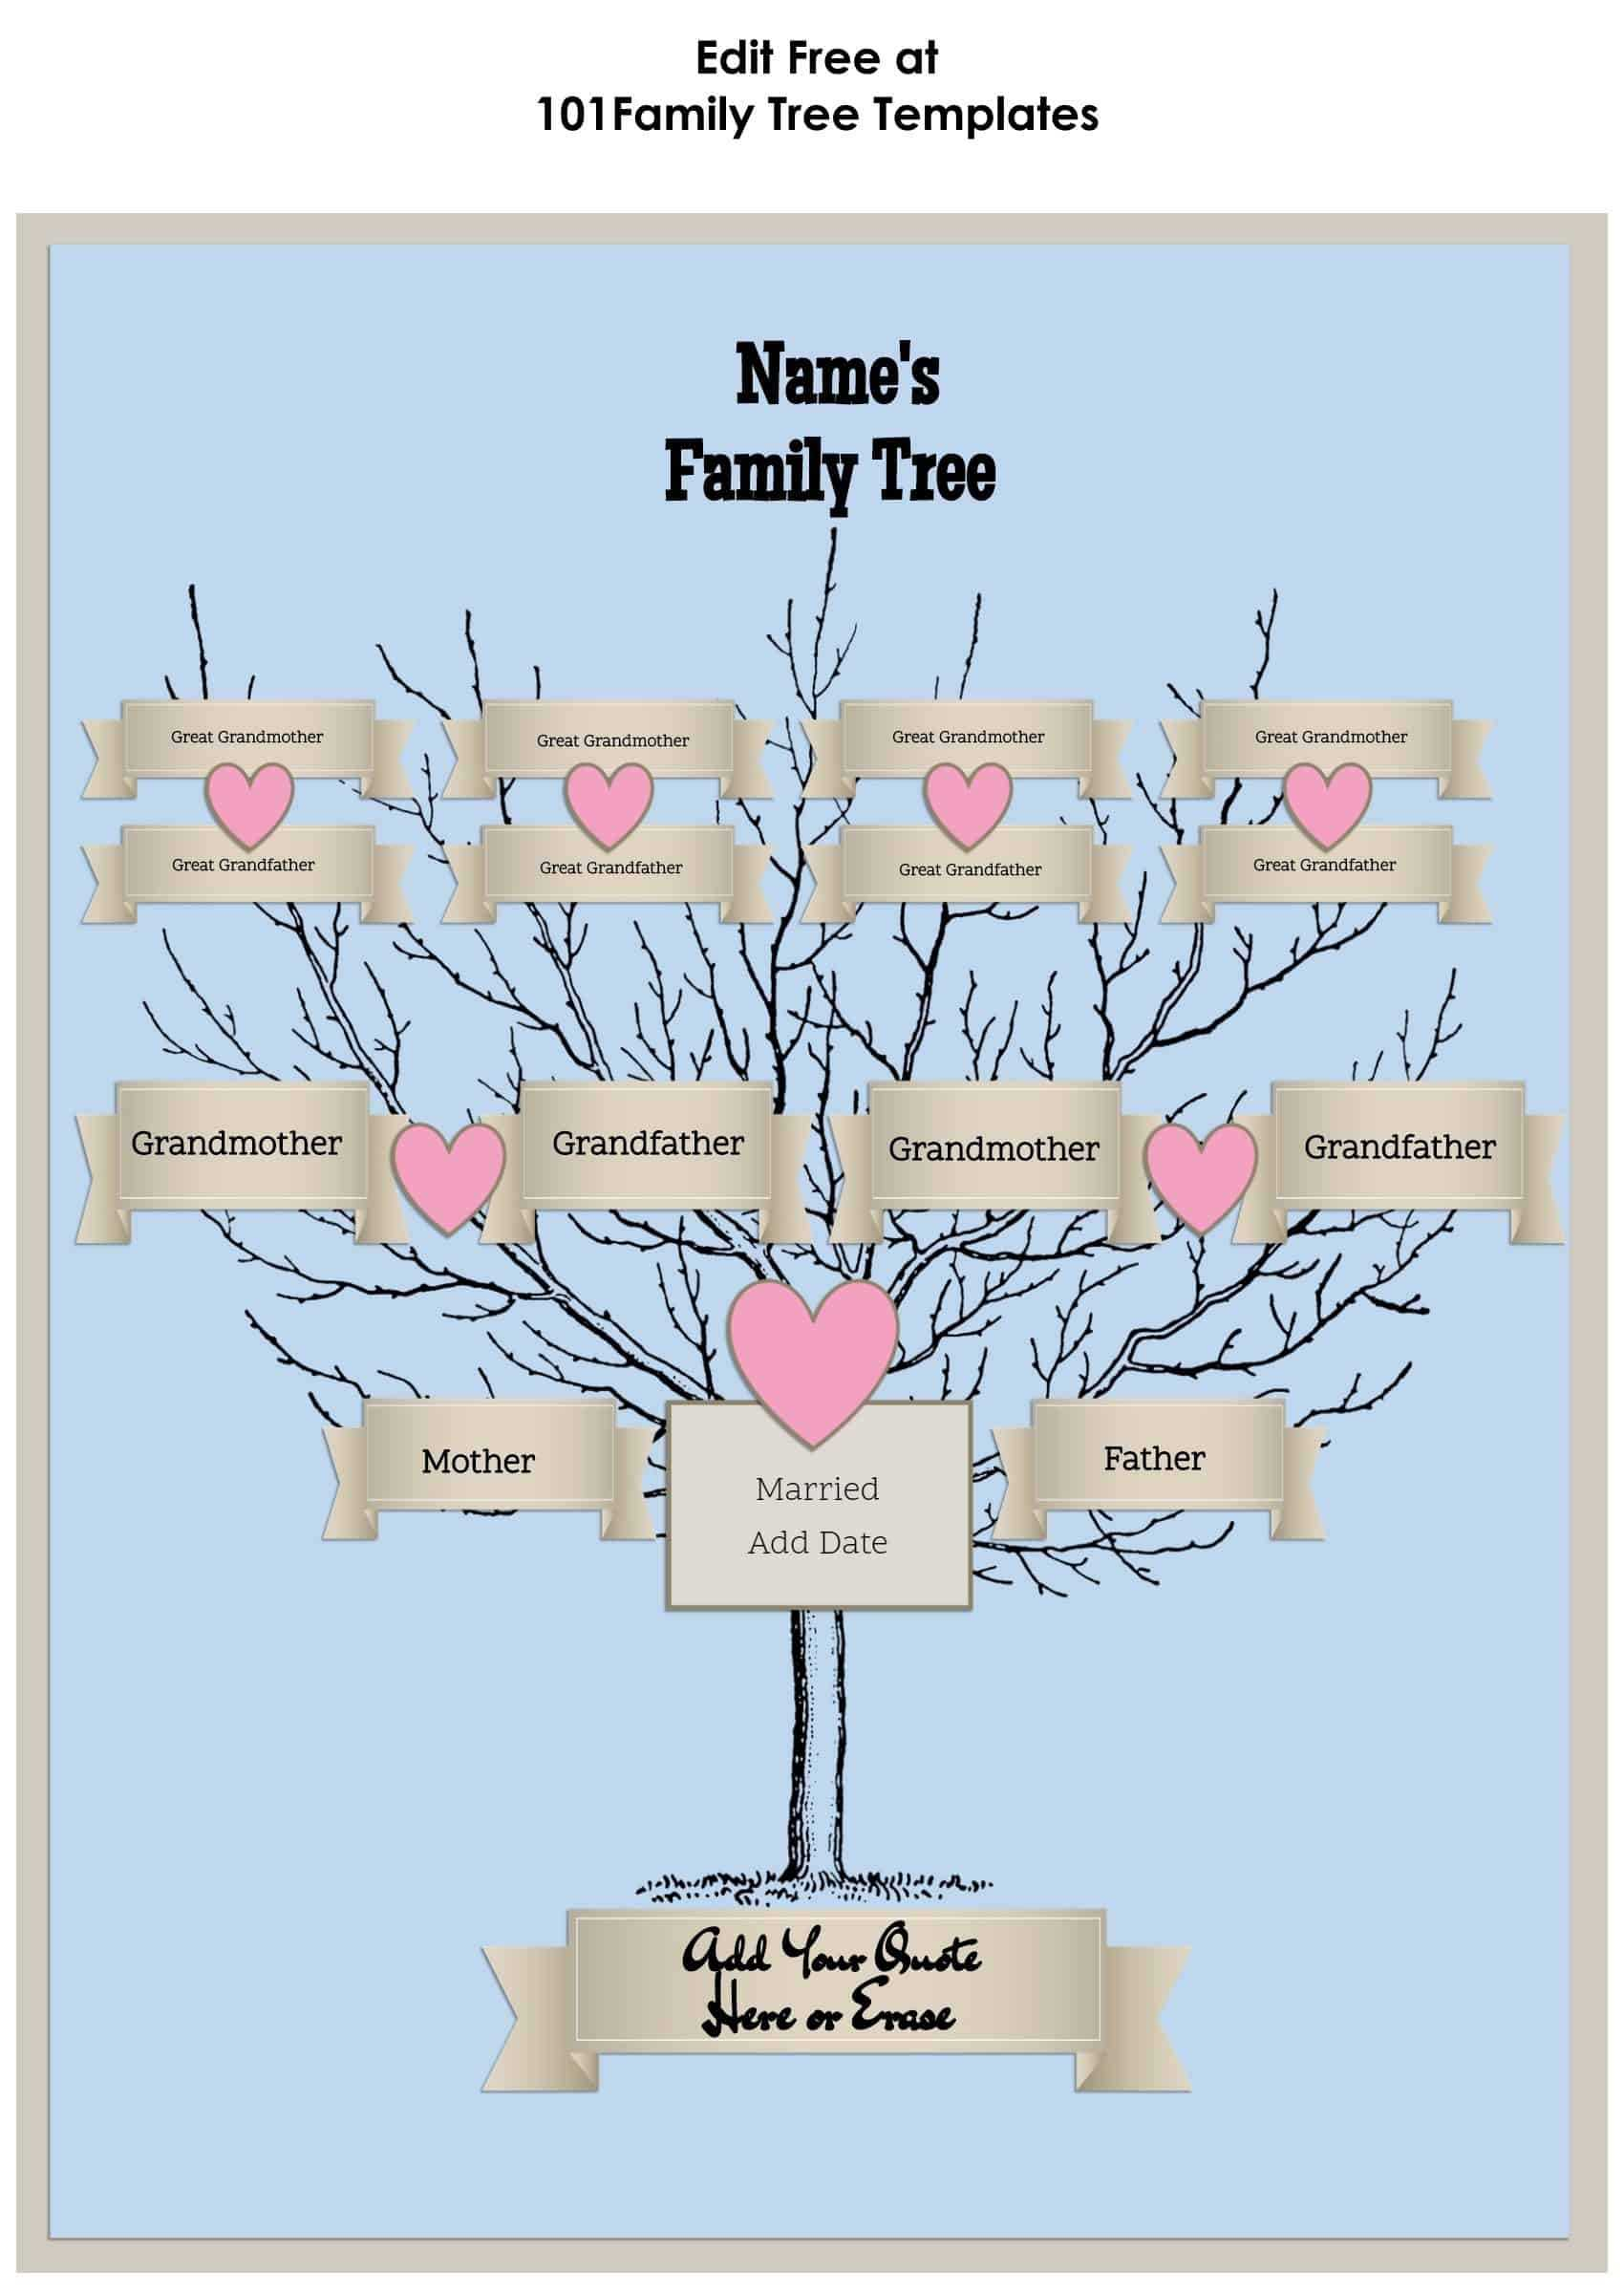 3 Generation Family Tree Generator   All Templates Are Free Throughout Blank Family Tree Template 3 Generations